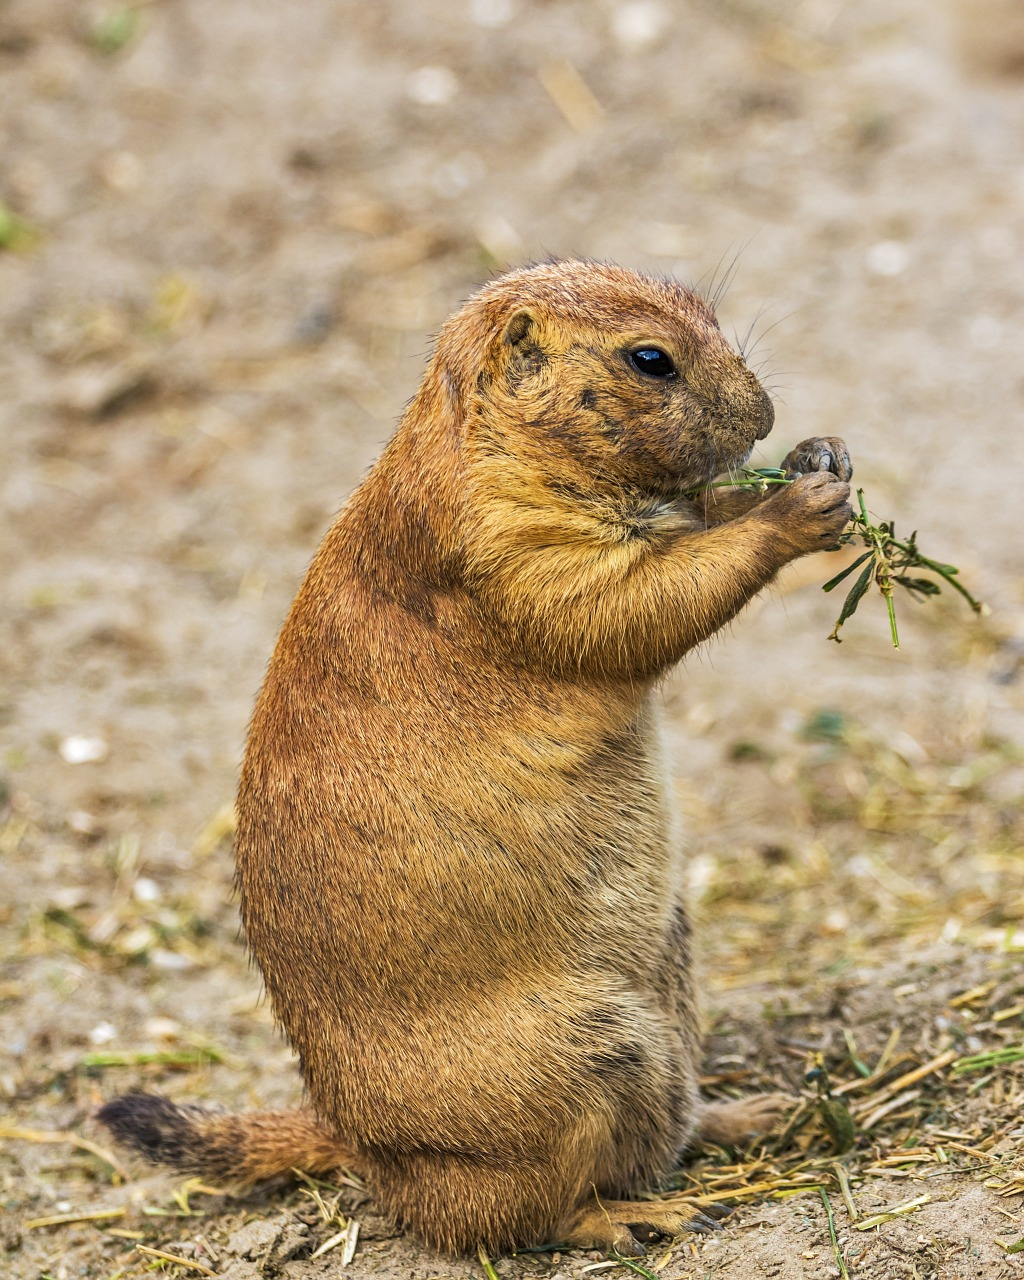 A prairie dog sitting up eating a piece of vegetation in its paws